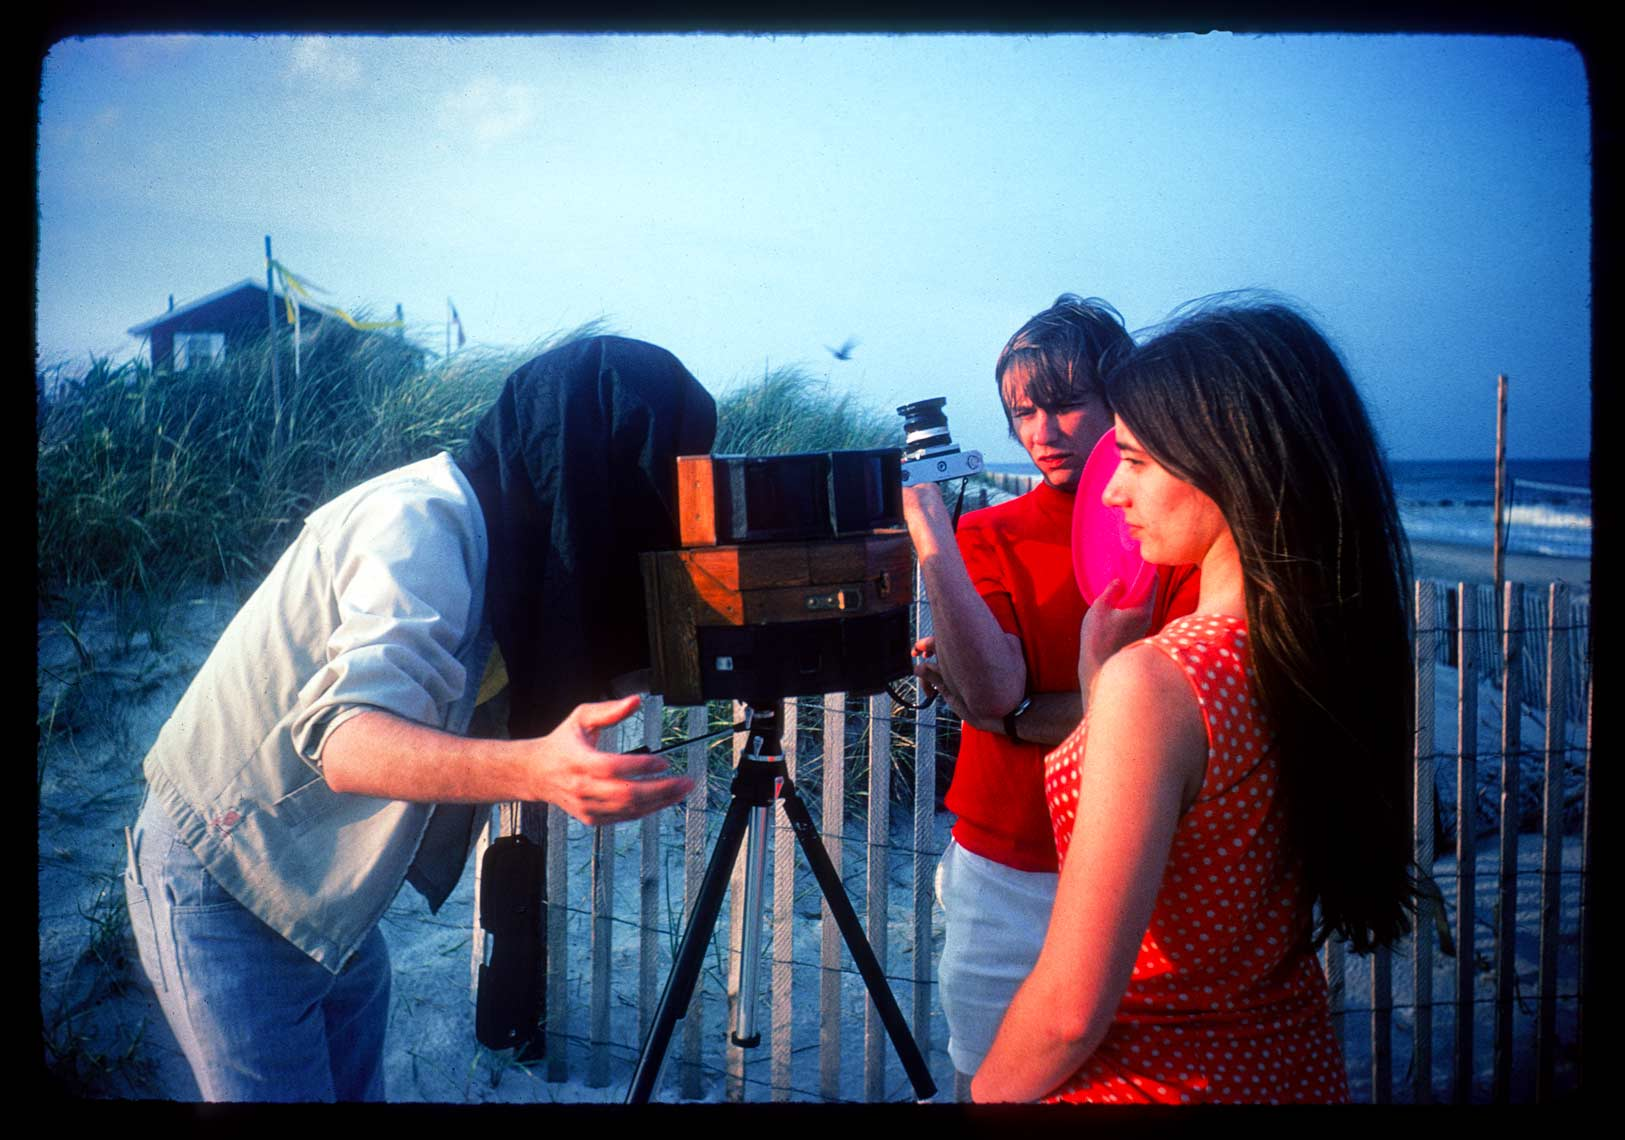 David Lebe using his four apature pinhole camera with viewfinder, 1975